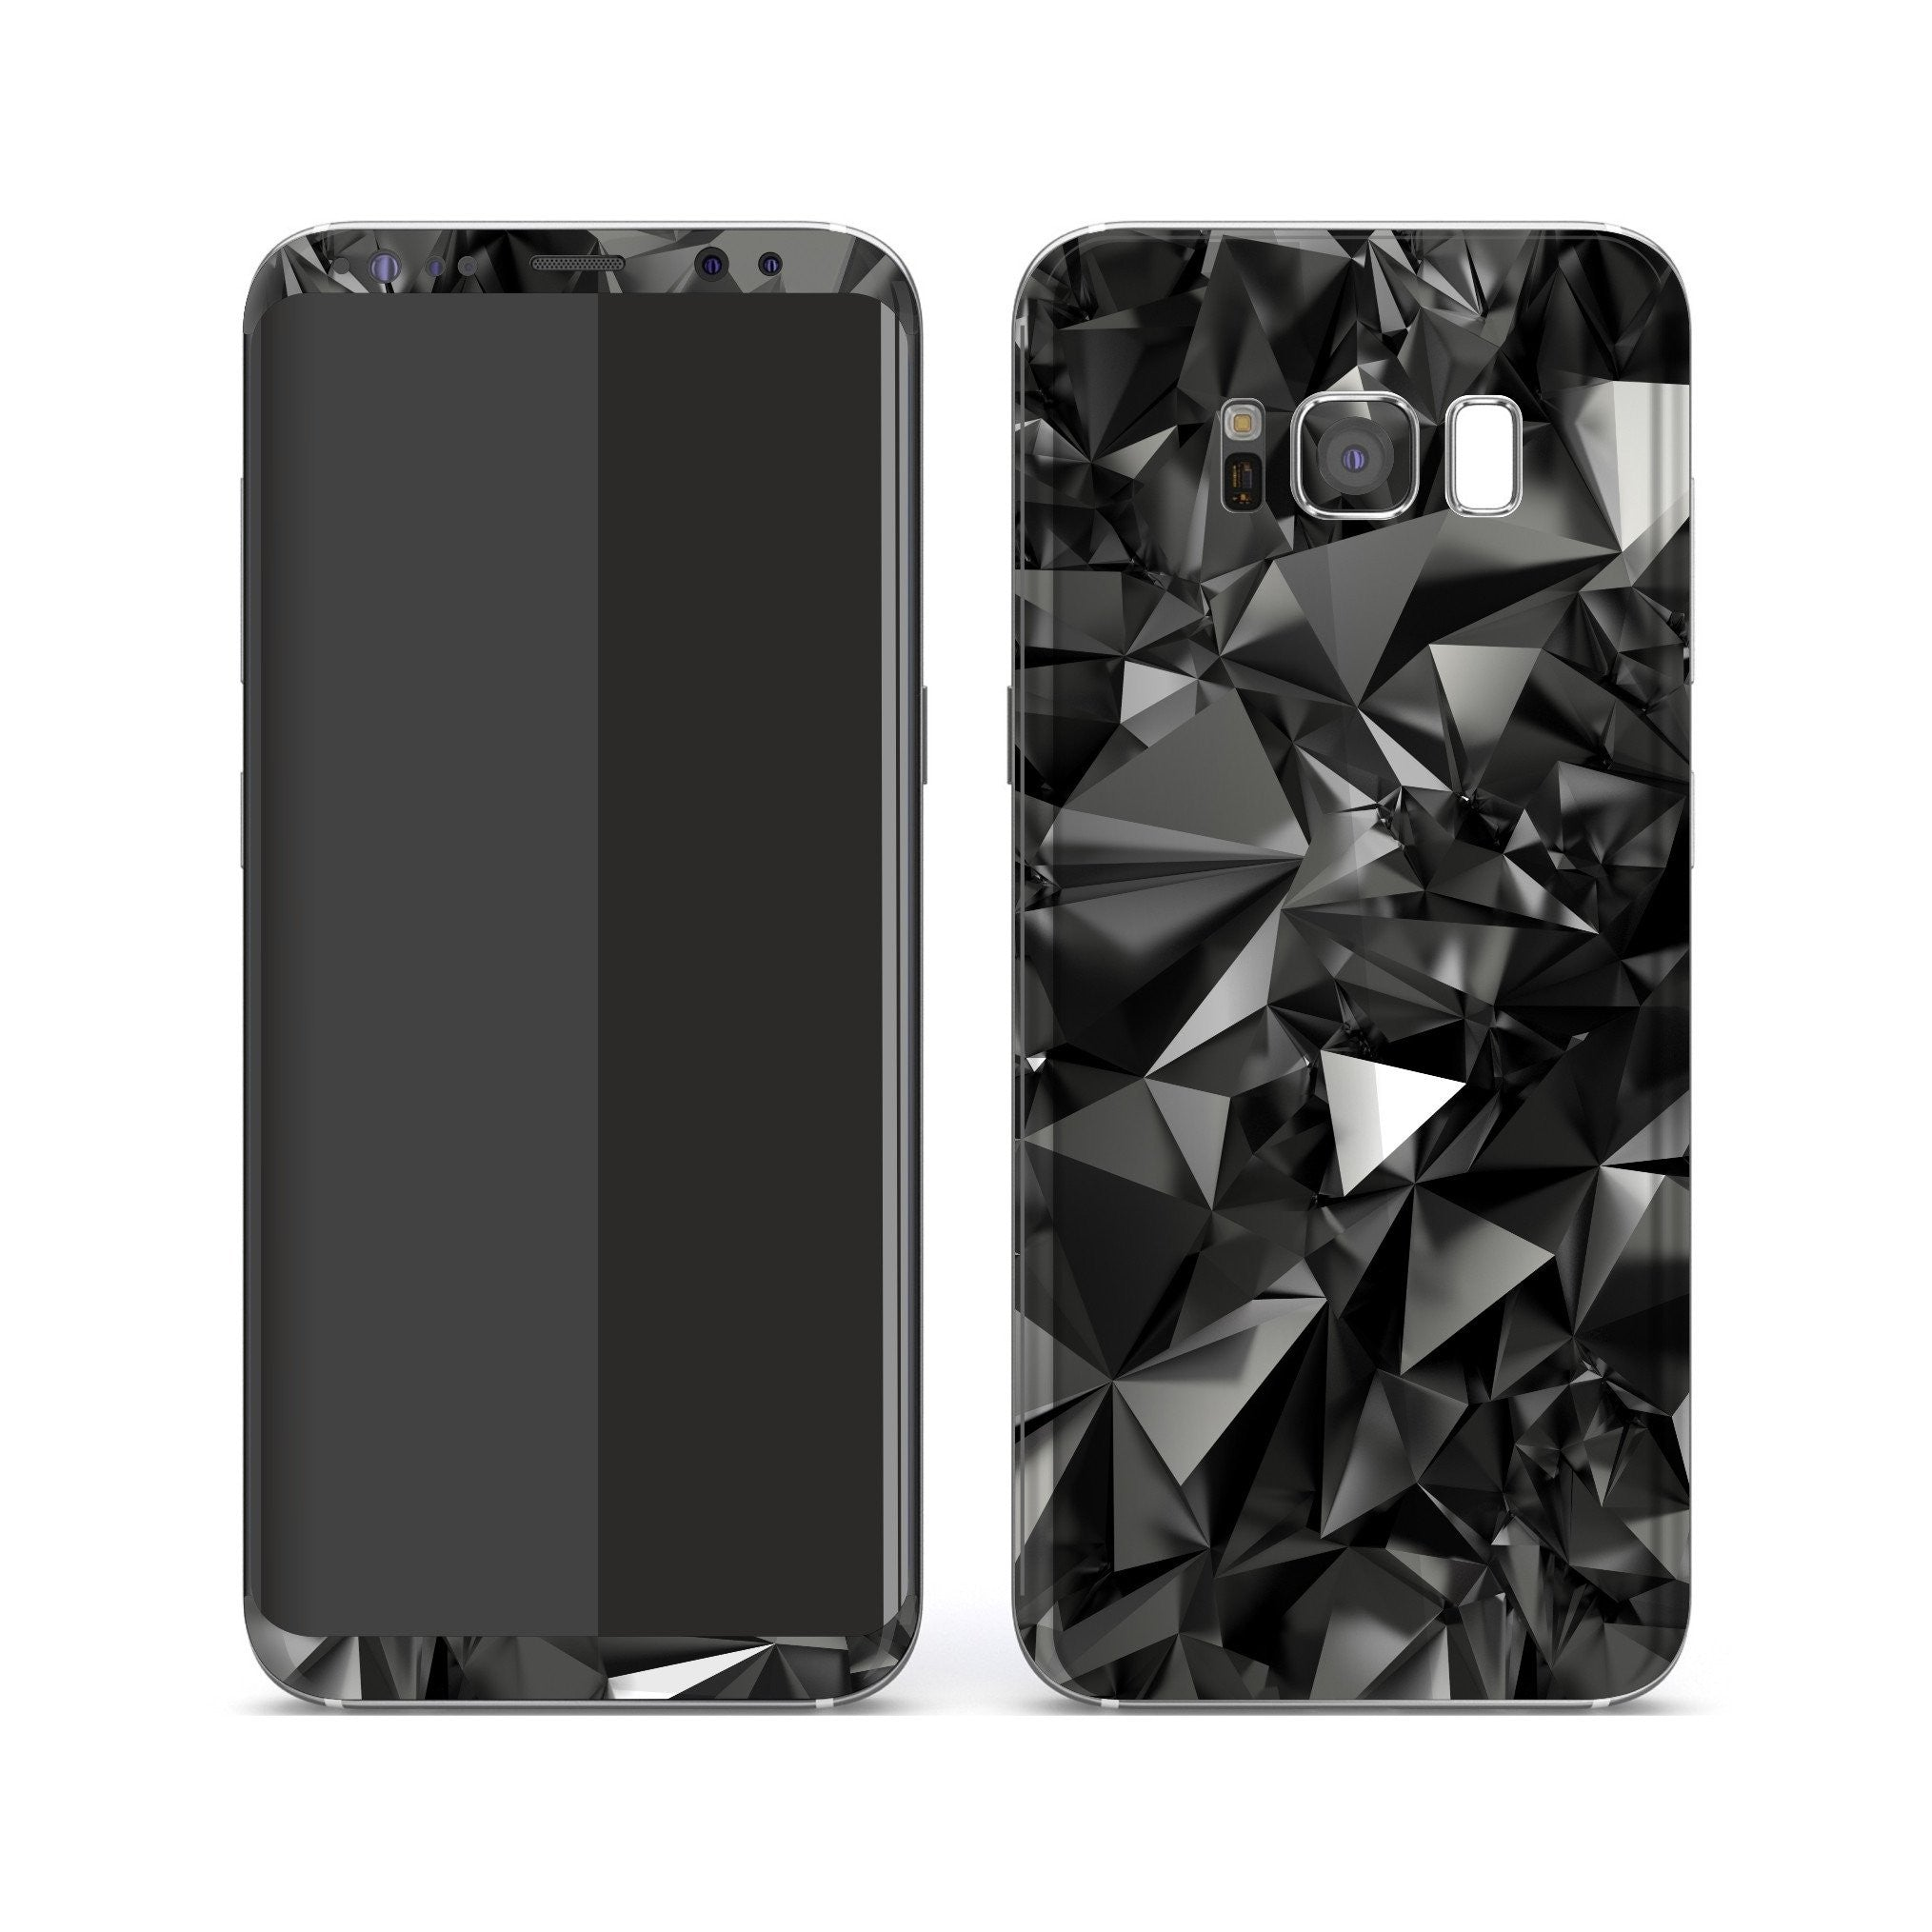 Samsung Galaxy S8+ Print Custom Signature Black Crystals Crystal Skin Wrap Decal by EasySkinz